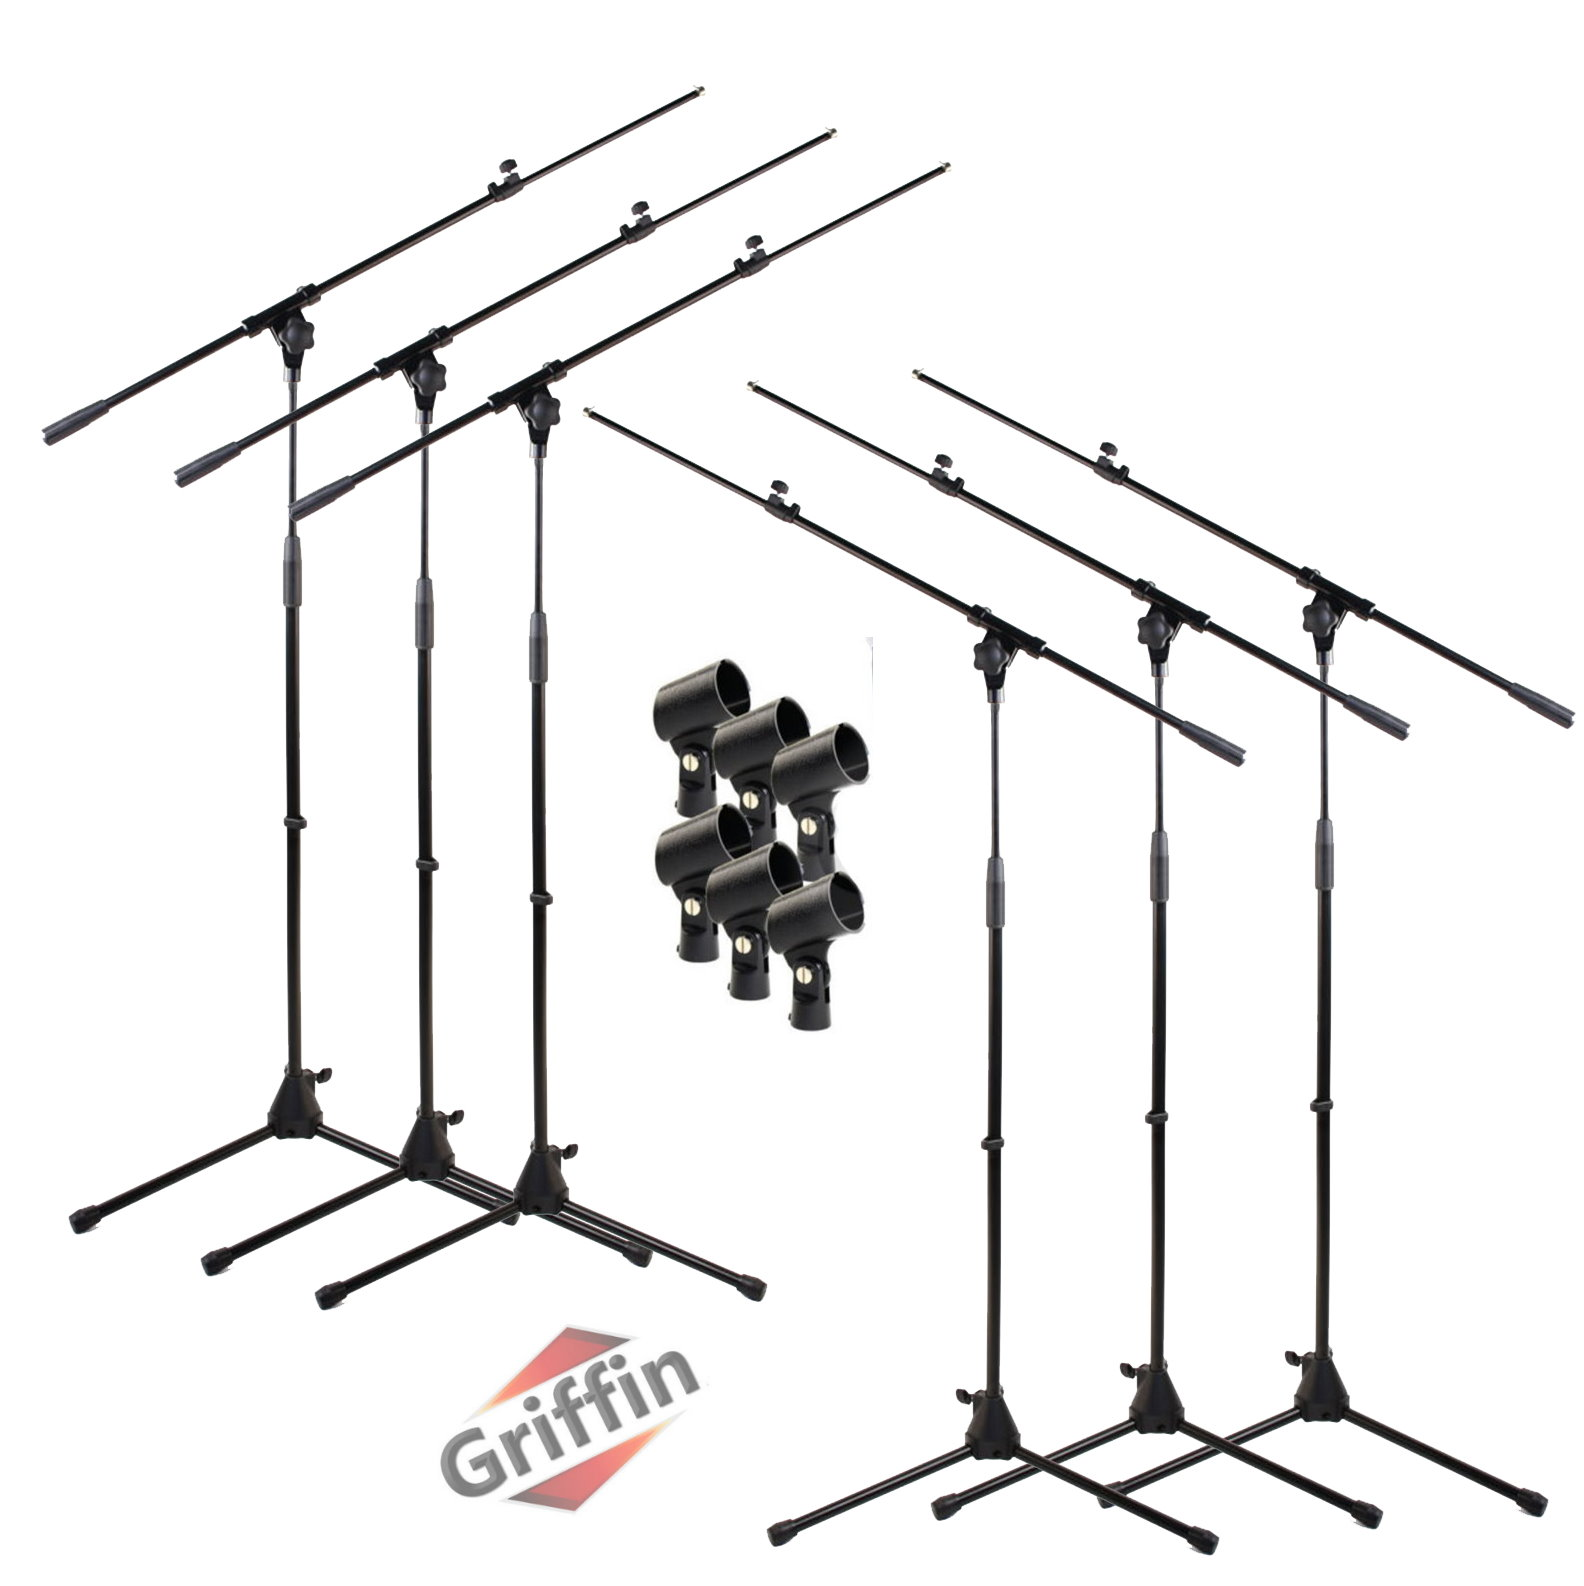 Microphone Boom Stand Package 6 PACK of Microphone Stands with Mic Clips by Griffin